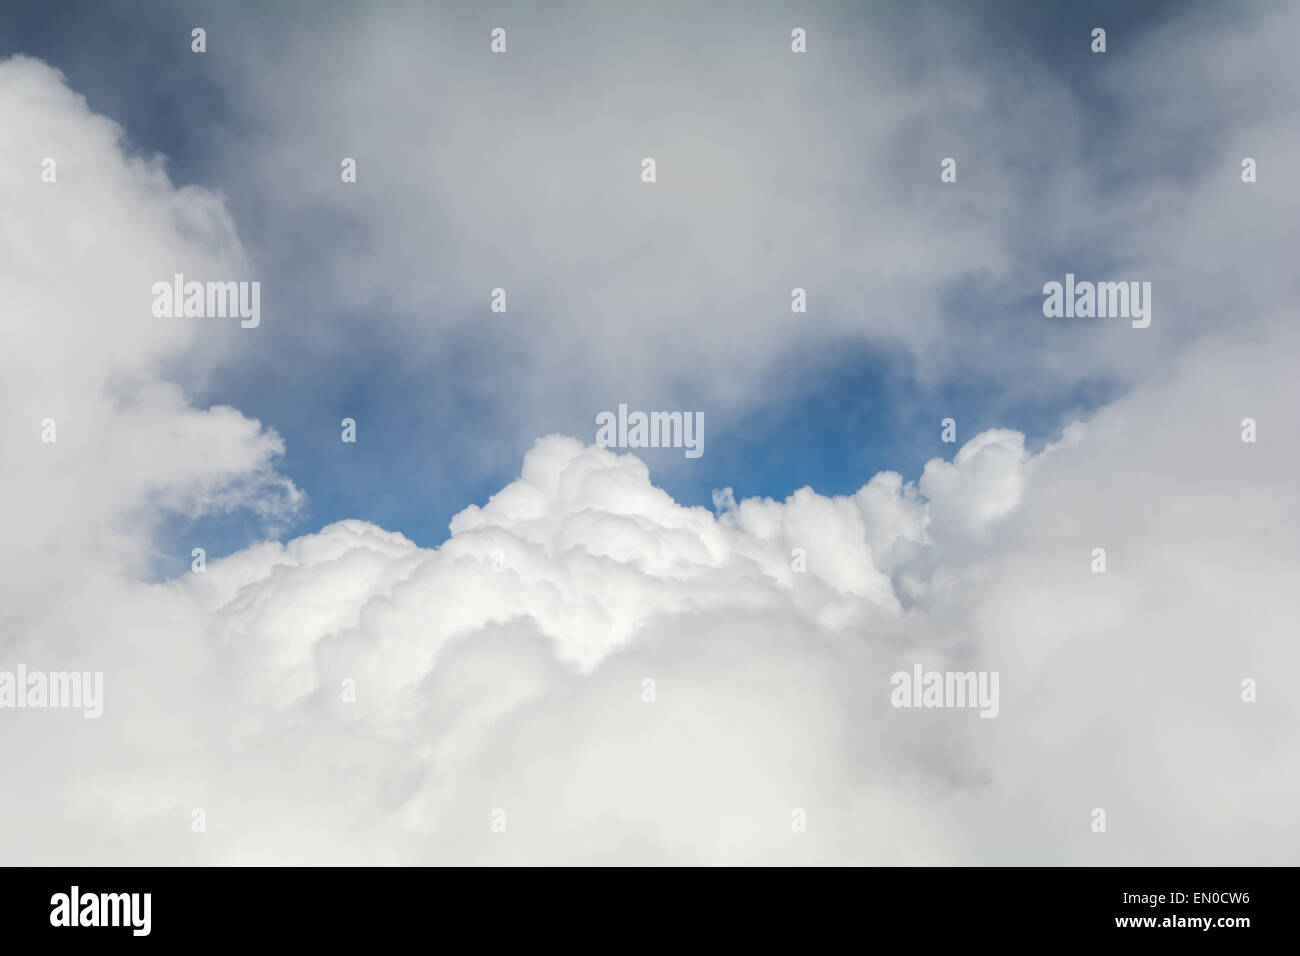 Texture of clouds with space for text - Stock Image